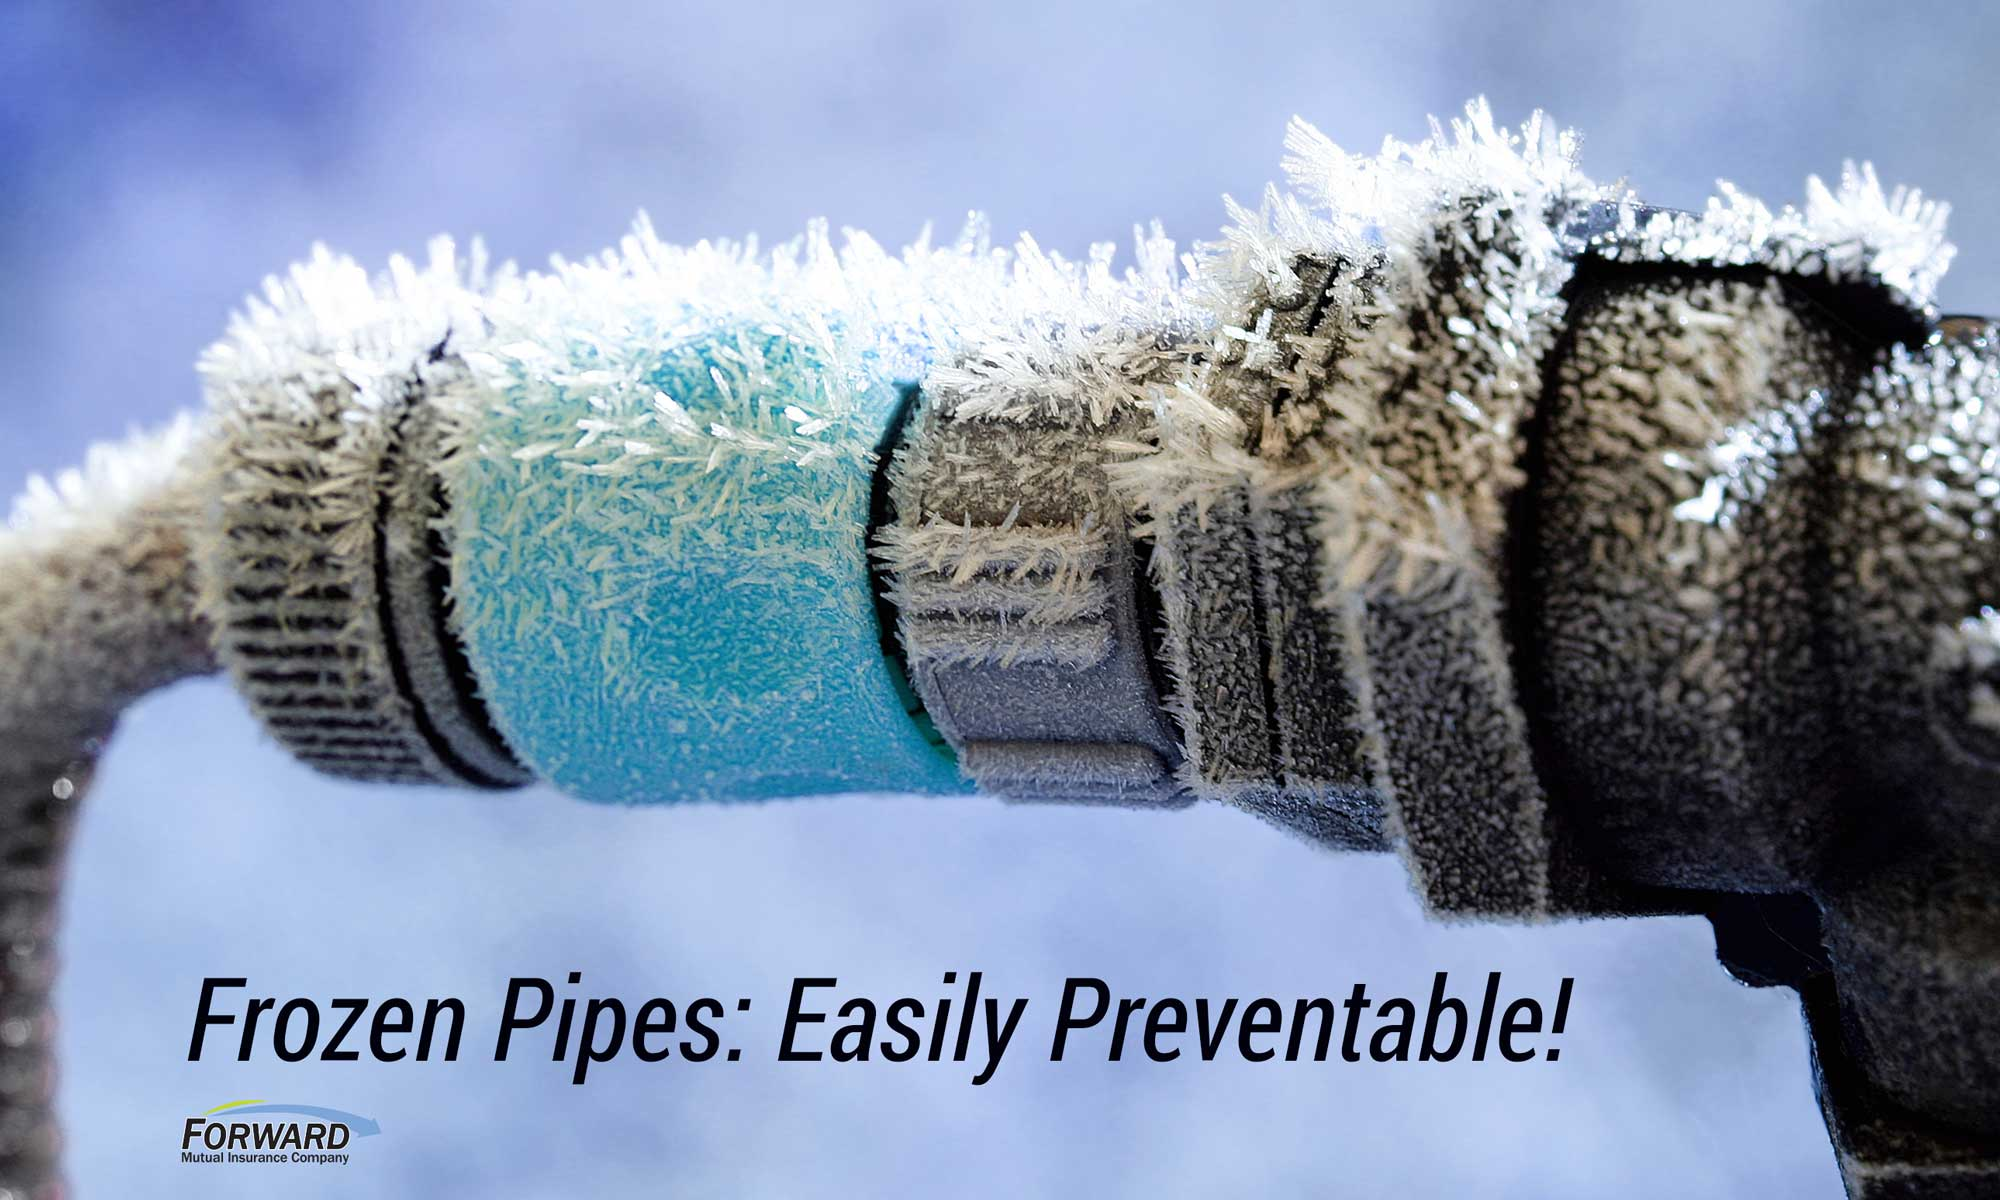 Frozen Water Pipes are easily preventable